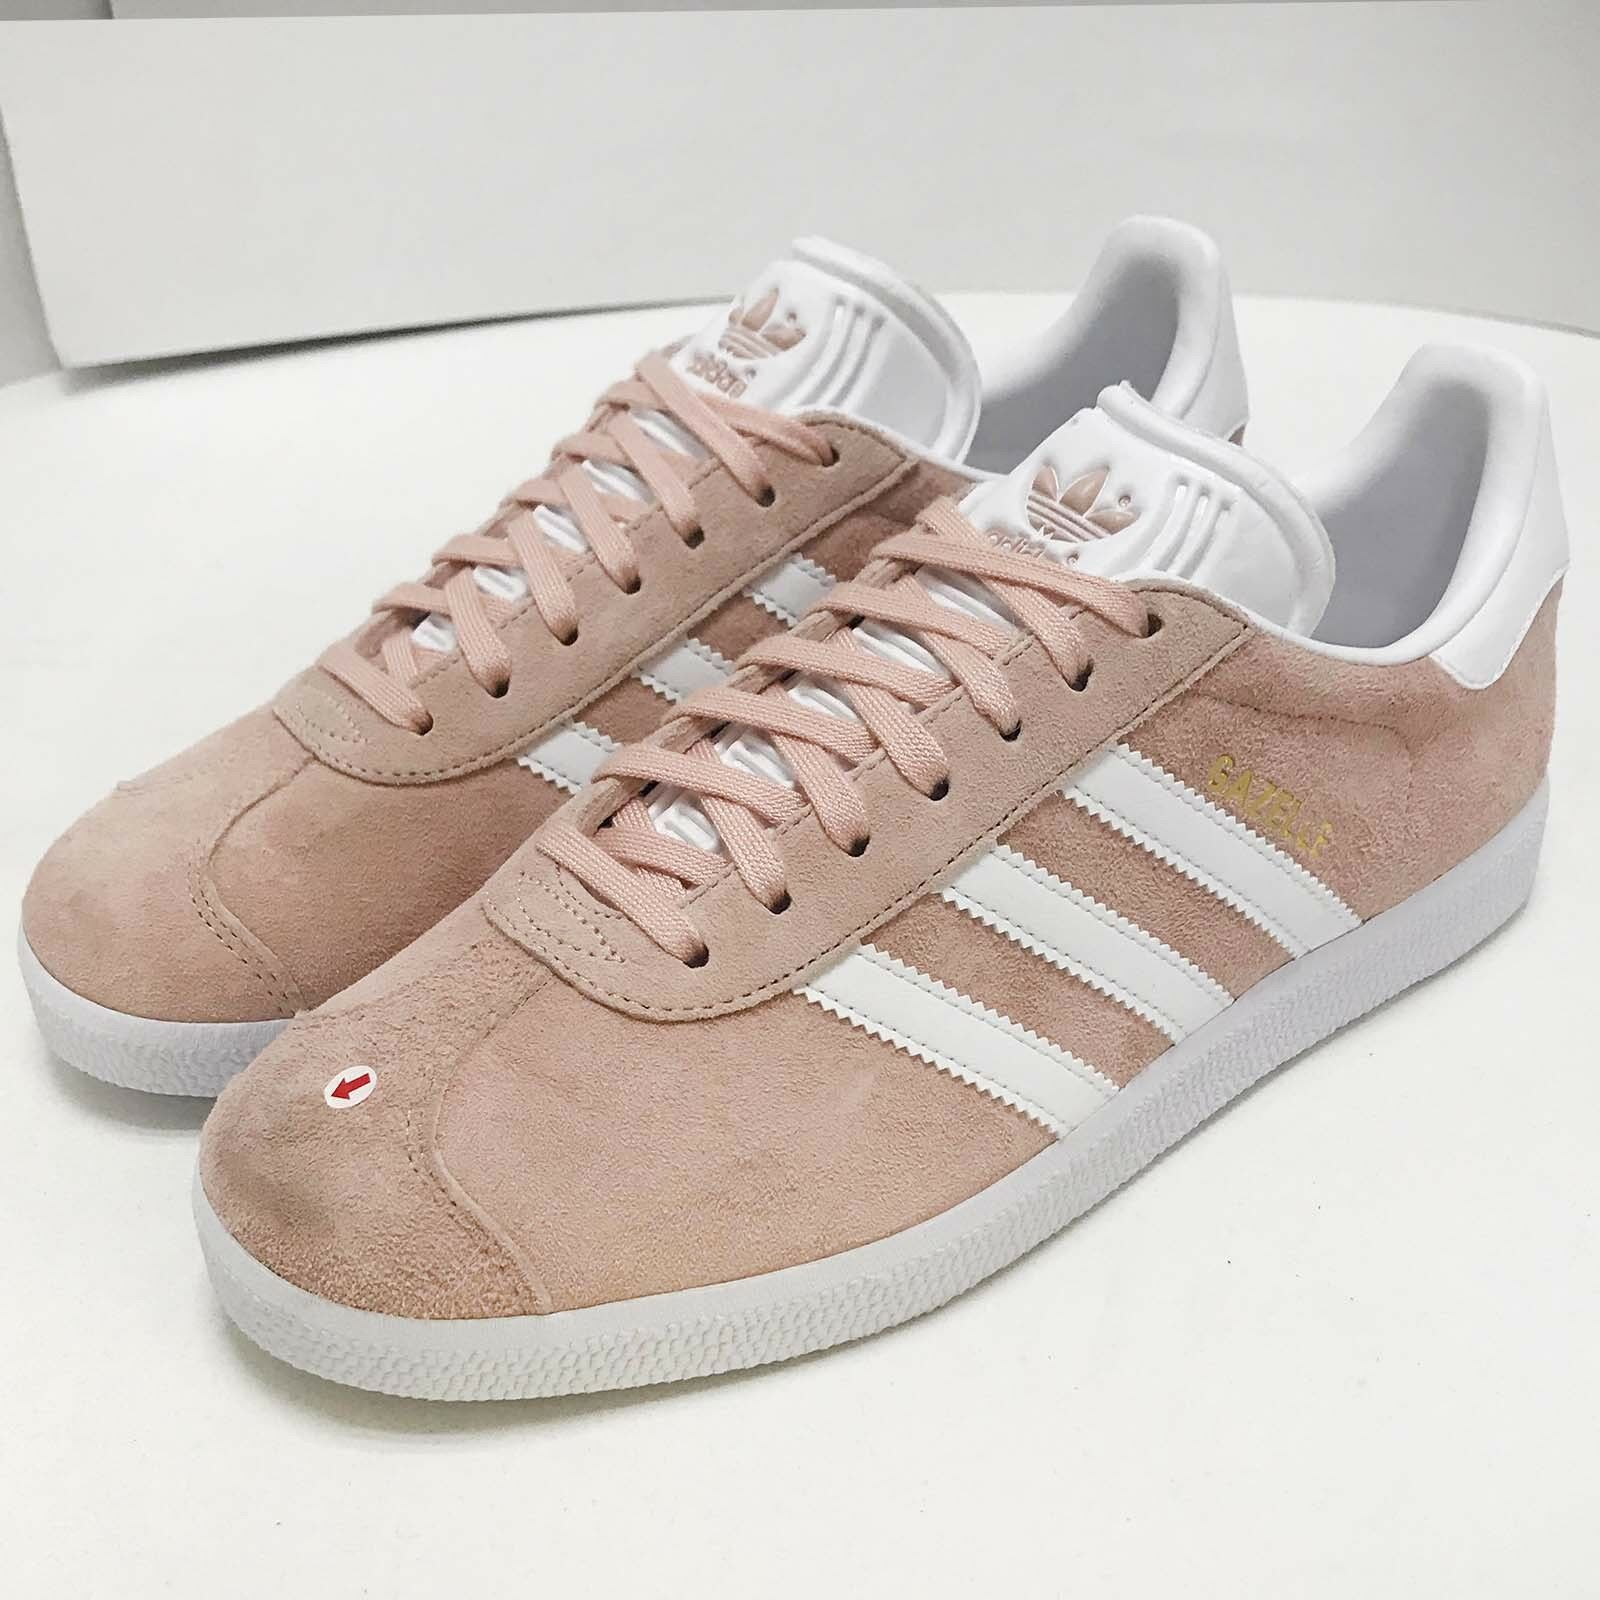 Adidas Originals Gazelle W Left Foot With Discoloration Women Without Box BA9600